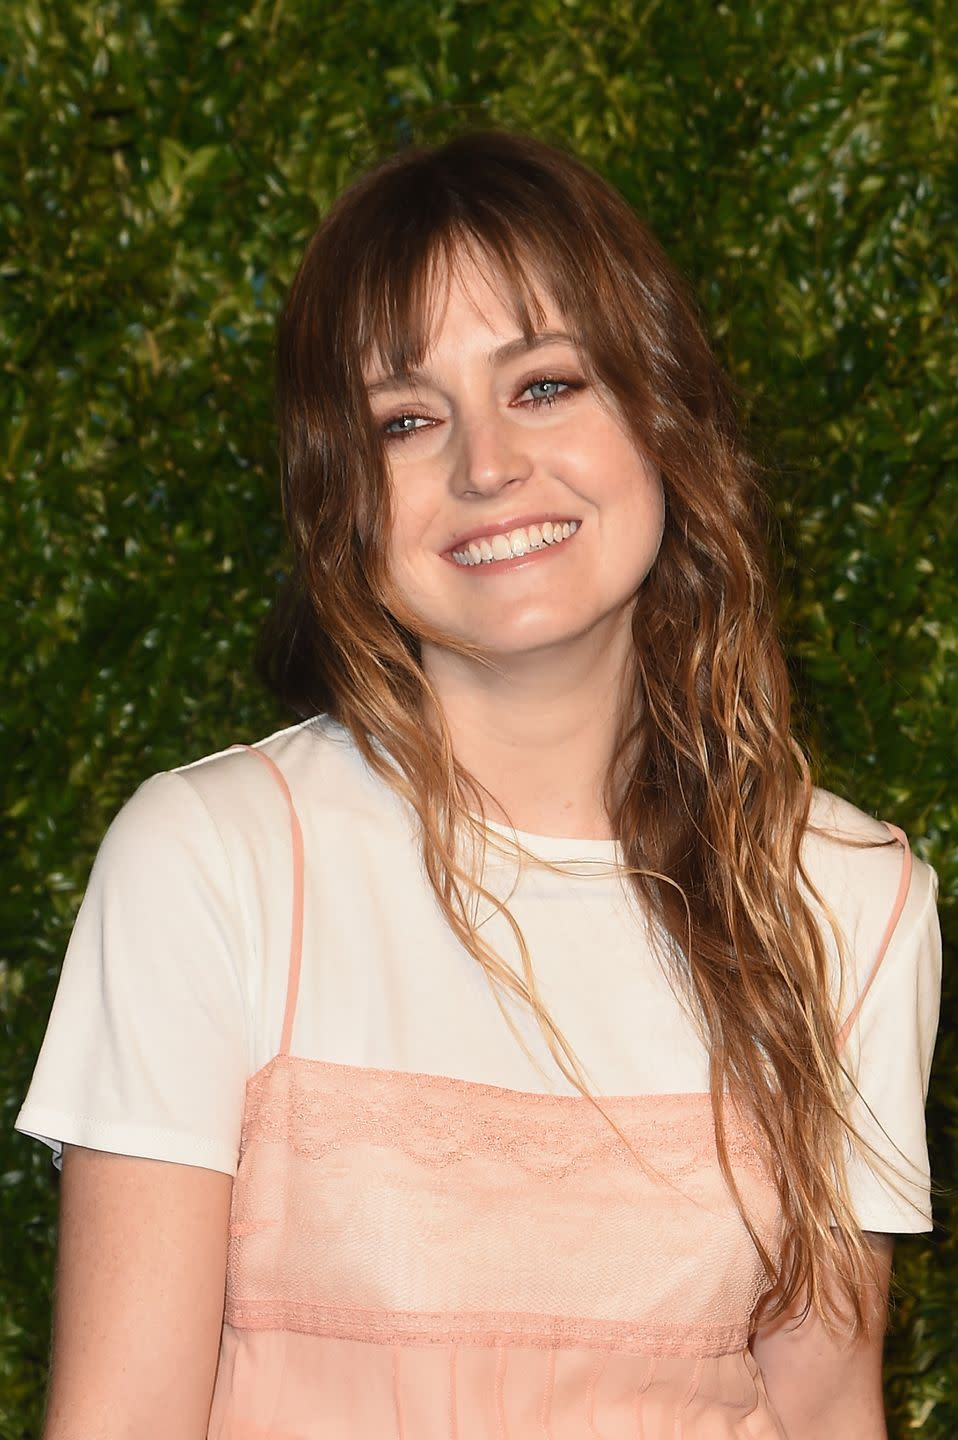 """<p>Lorraine Nicholson, Jack Nicholson's daughter, began acting in 2004 with minor roles in feature films and received the prestigious Awards show title in 2007. She has since found her talent in a <a href=""""https://www.townandcountrymag.com/society/a10370318/lorraine-nicholson-interview/"""" rel=""""nofollow noopener"""" target=""""_blank"""" data-ylk=""""slk:directorial role,"""" class=""""link rapid-noclick-resp"""">directorial role,</a> debuting a short film at the Tribeca Film Festival in 2017. </p>"""